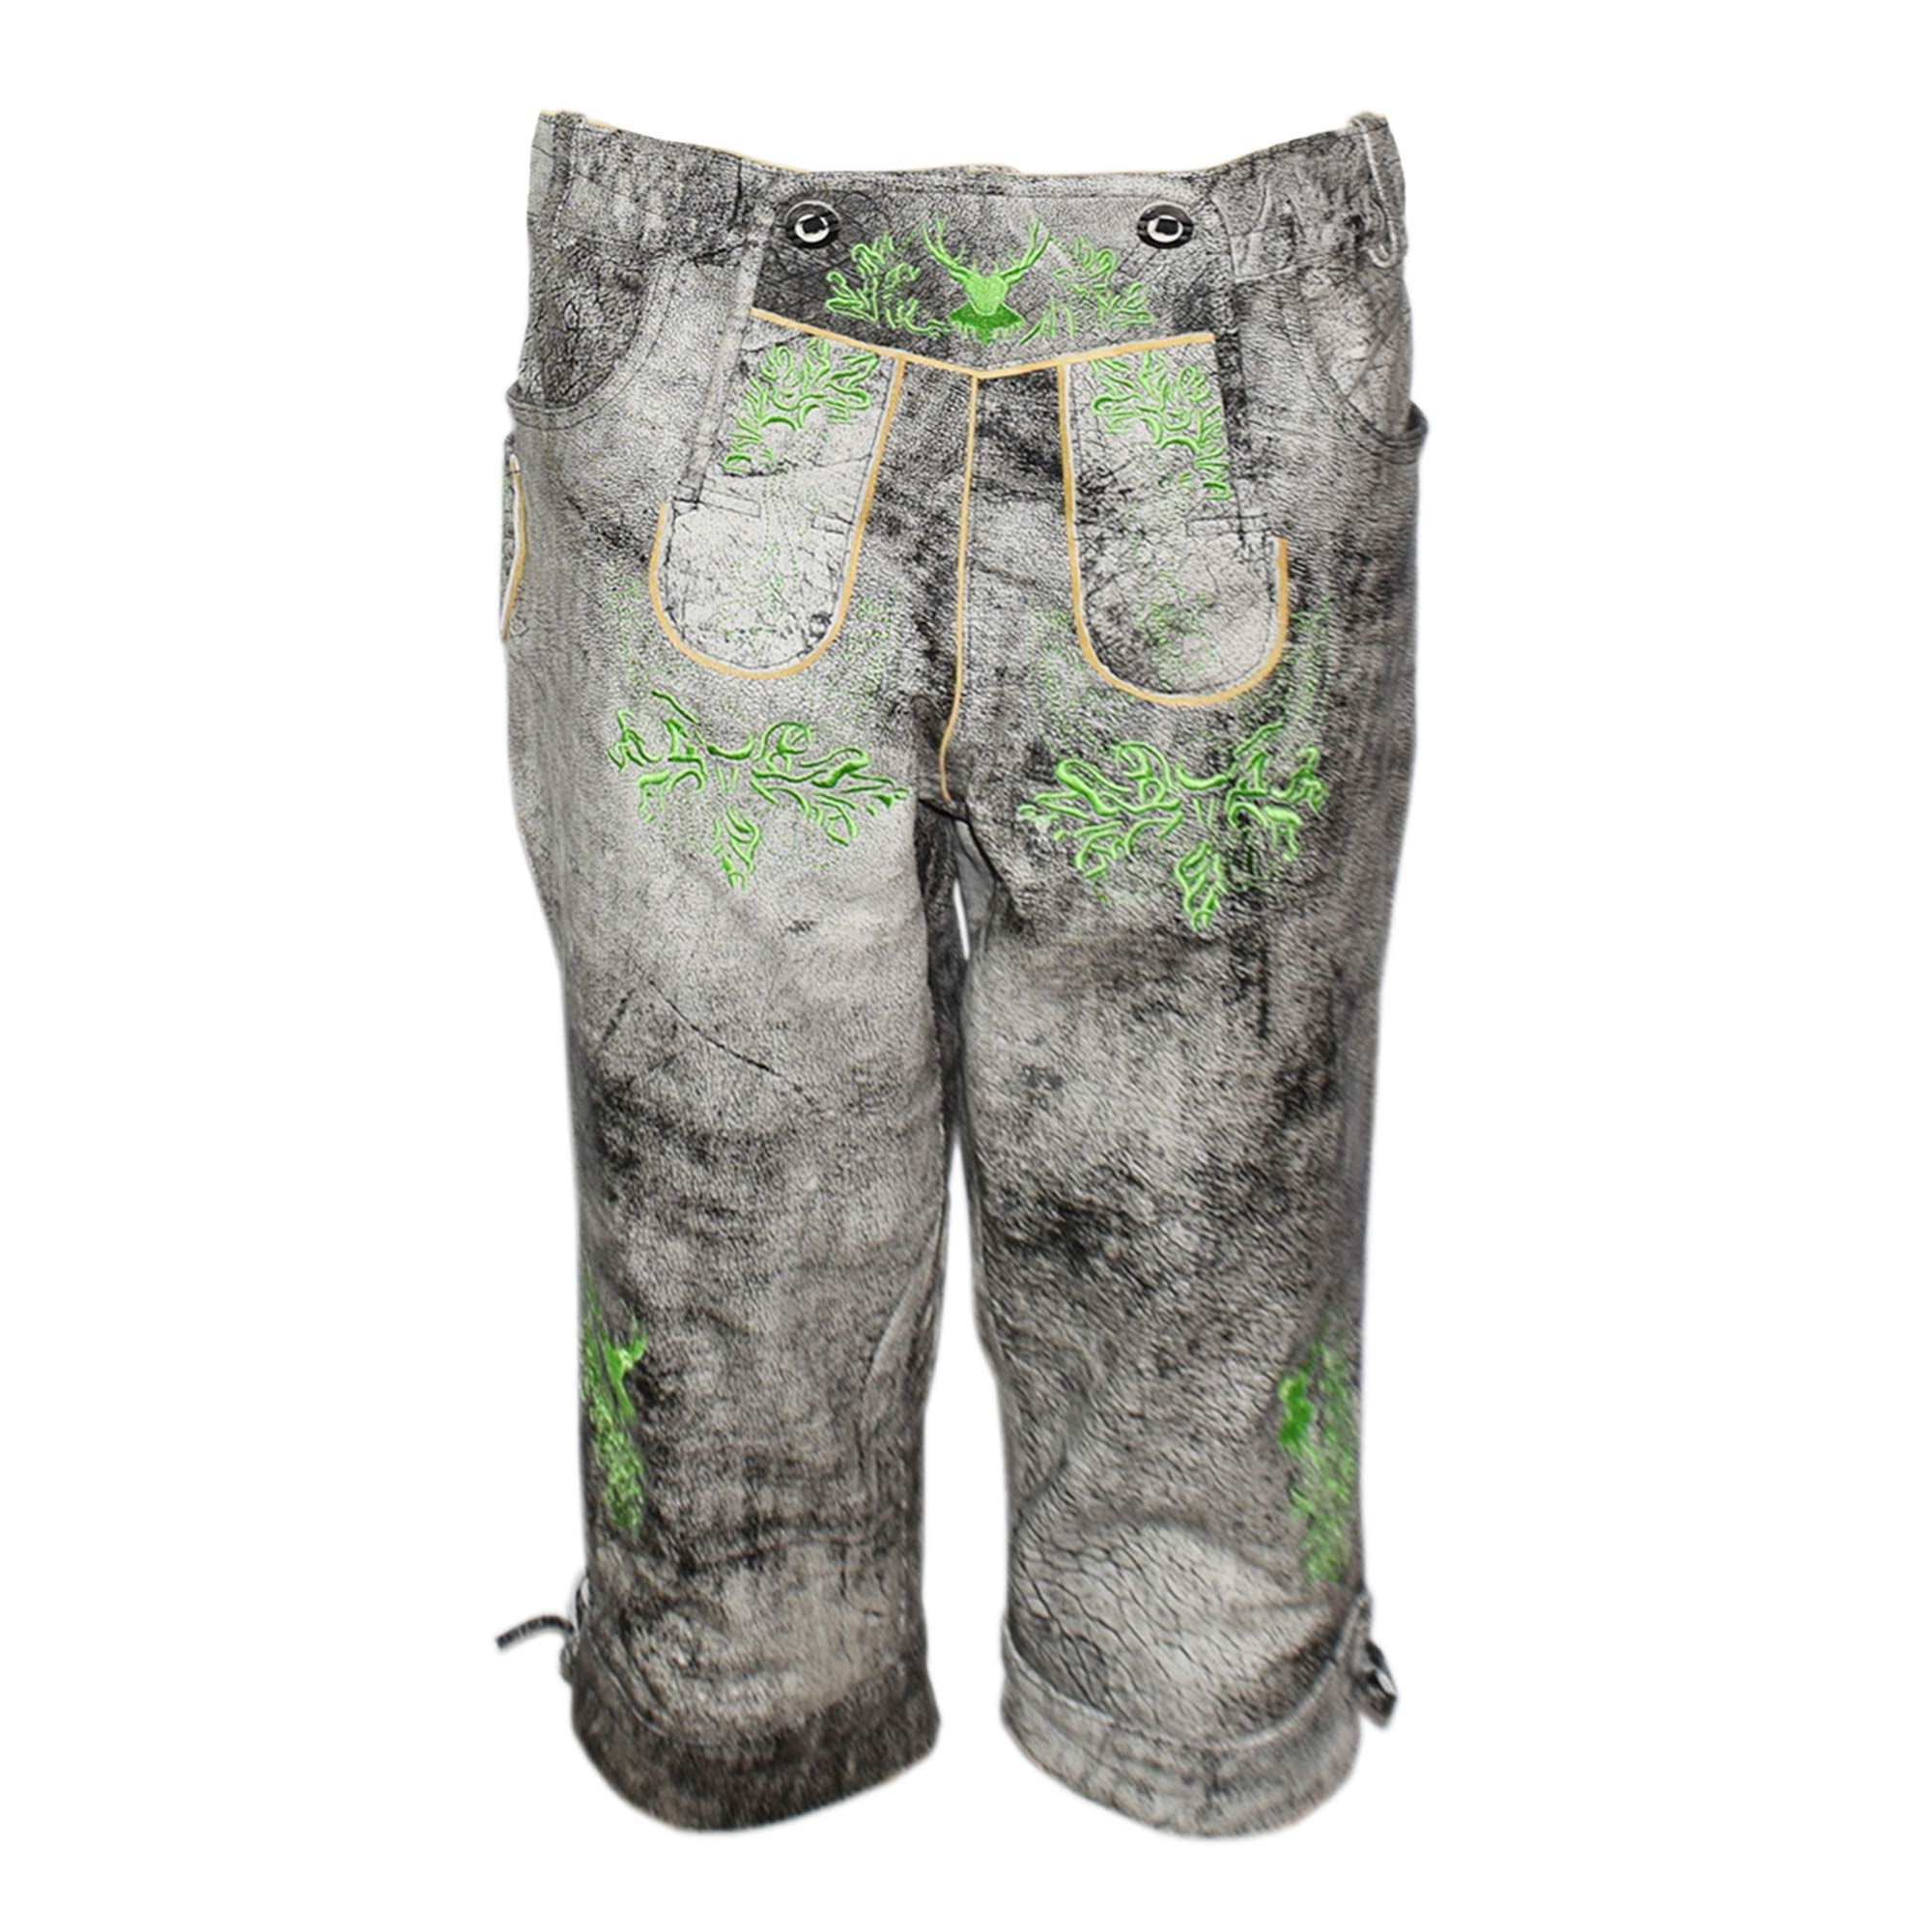 SHINY GREY MEN LONG LEDERHOSEN WITH GREEN ART WORK